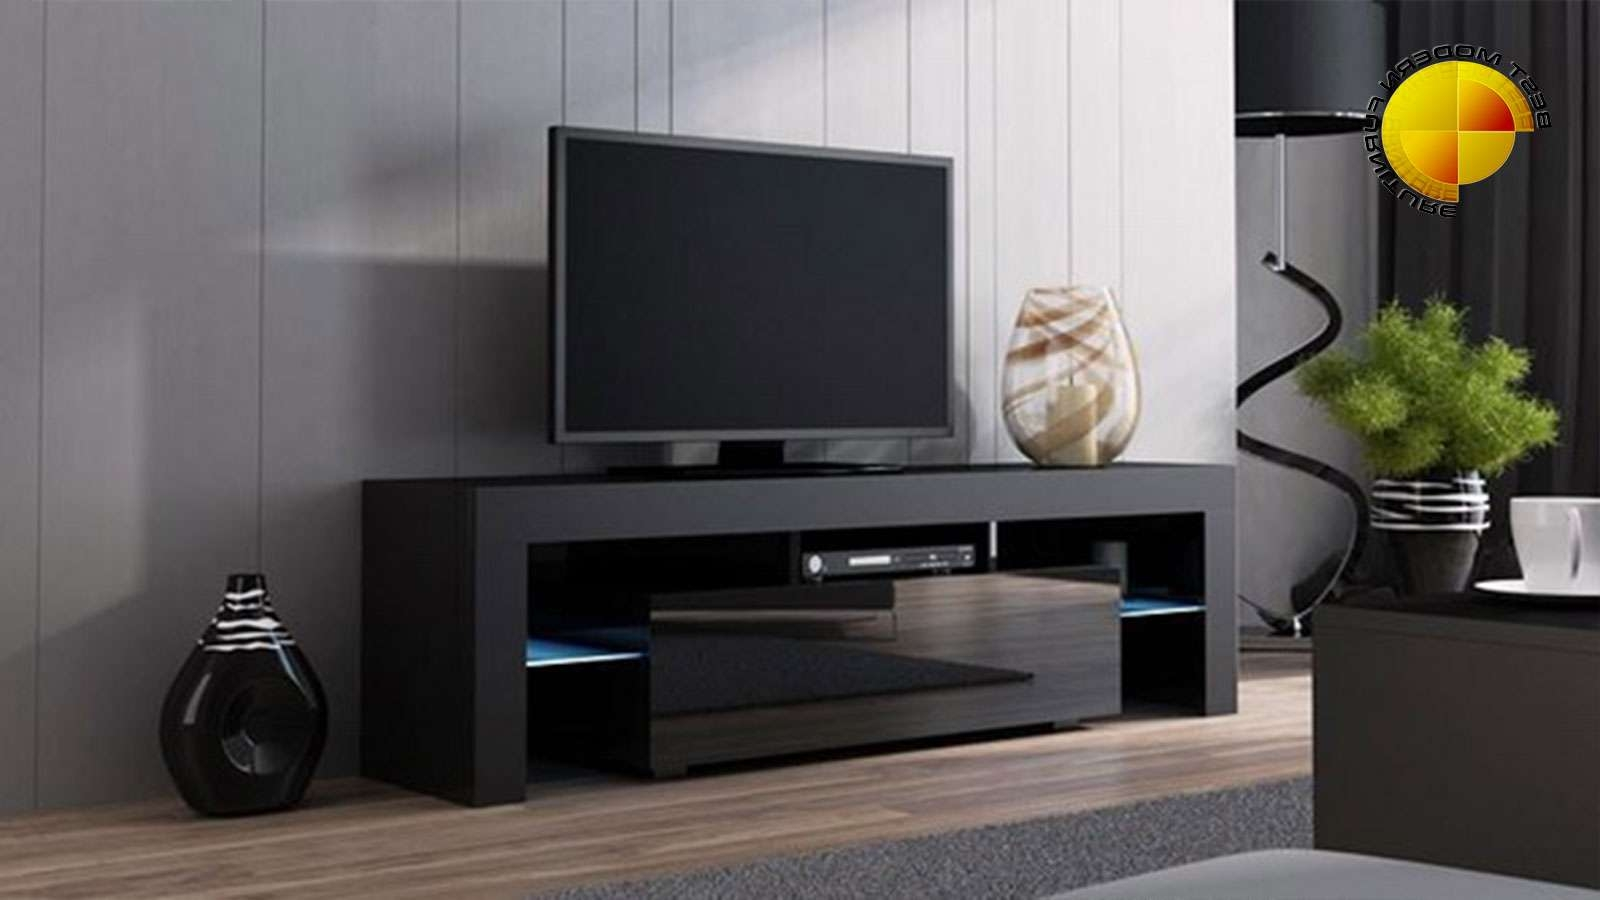 Modern Tv Stand 160cm High Gloss Cabinet Rgb Led Lights Black Unit With Modern Tv Stands (View 9 of 15)